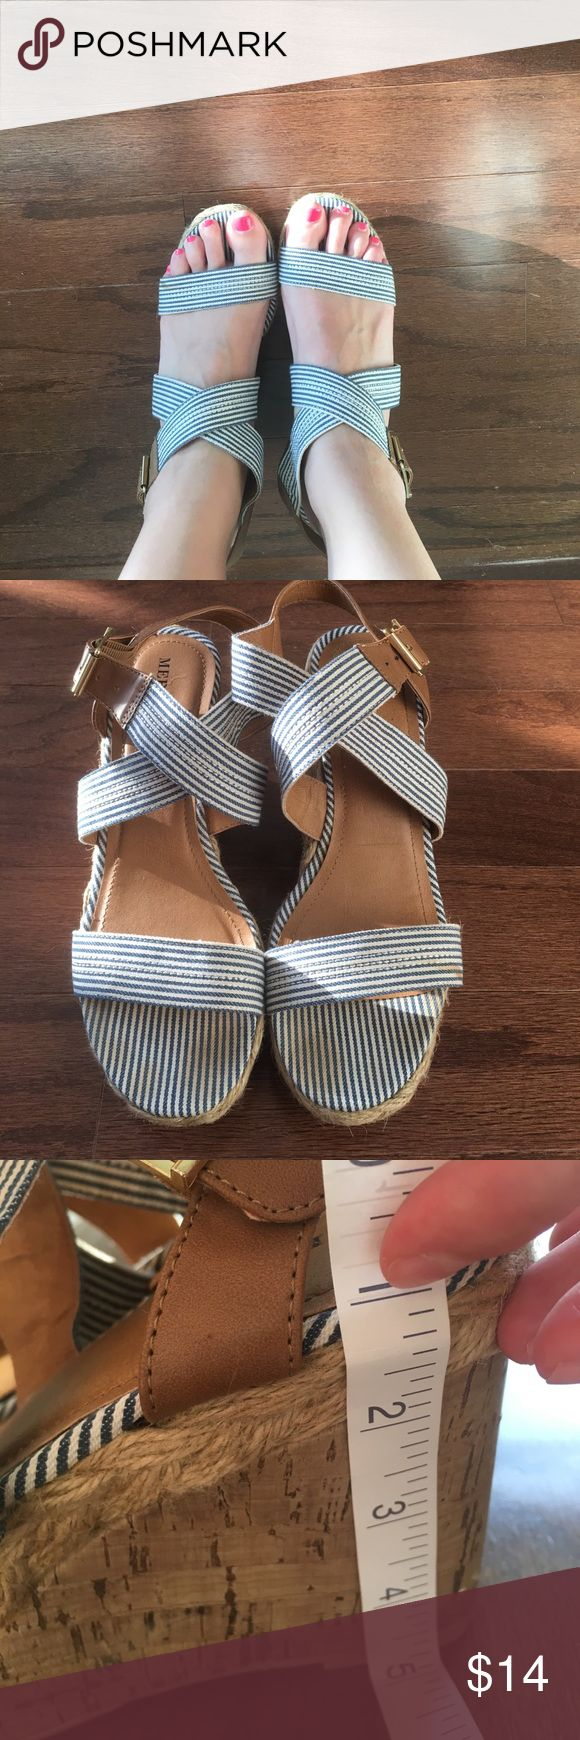 Blue and white wedge heels Merona blue and white striped wedge heels! Heel measures about 5 in. Minimal wear, some staining can be seen around toe area as shown in picture. Merona Shoes Wedges